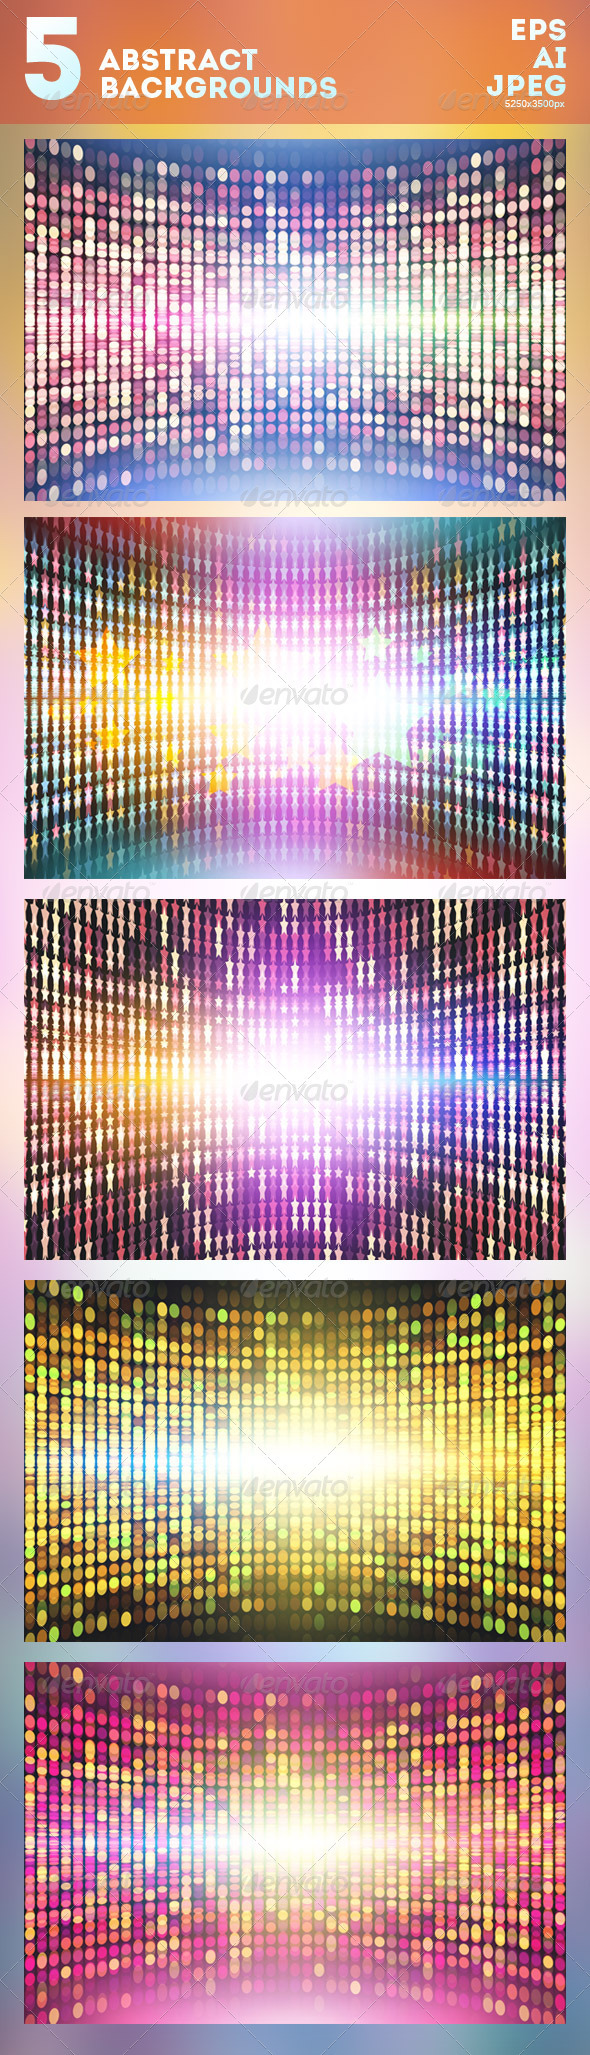 5 Abstract Vector Backgrounds